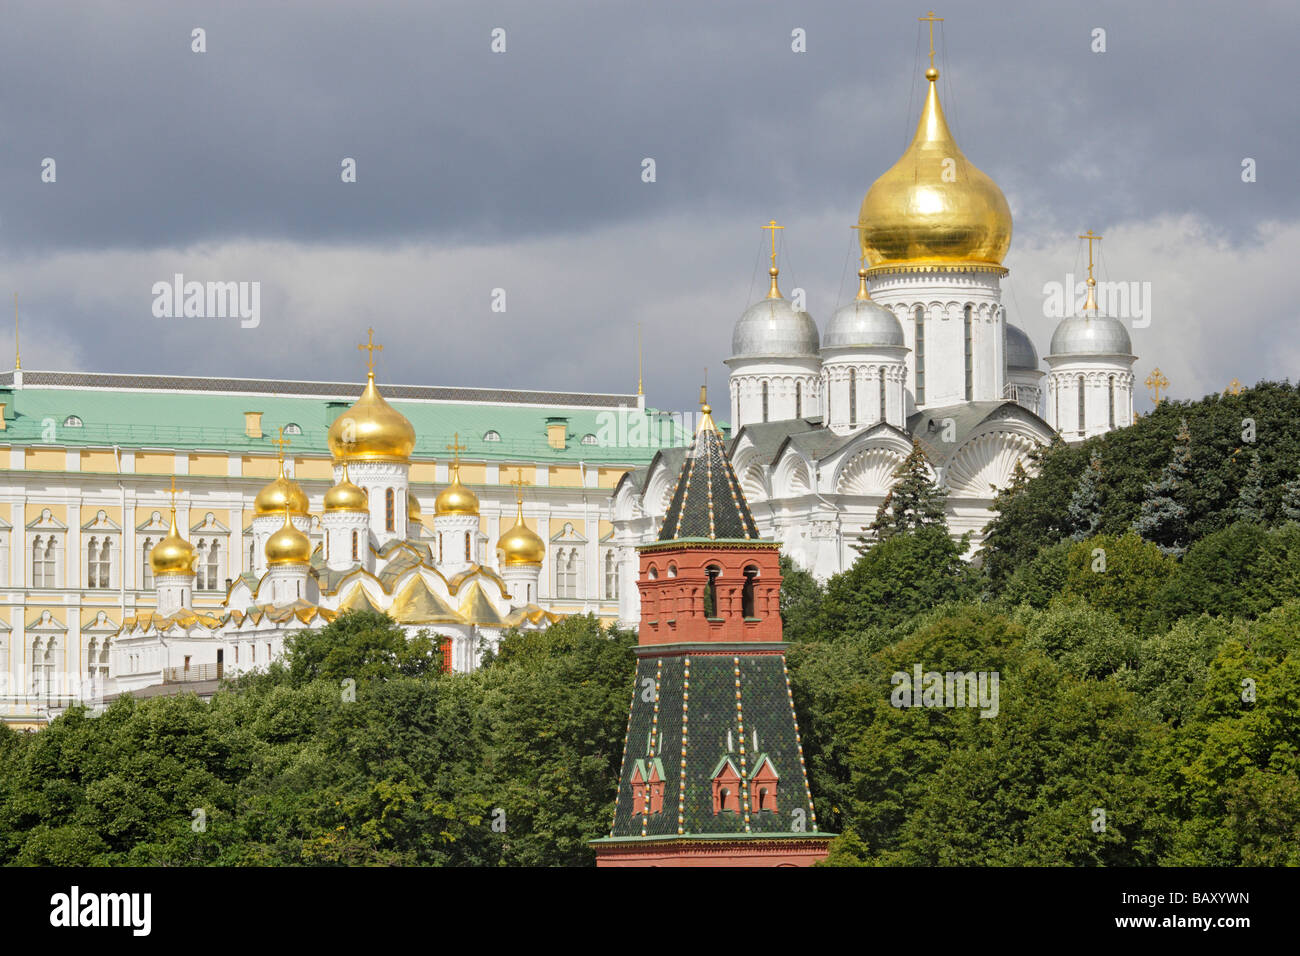 A riverside view of the Kremlin from left to right, Grand Kremlin Palace, Cathedral of the Annunciation, Cathedral - Stock Image